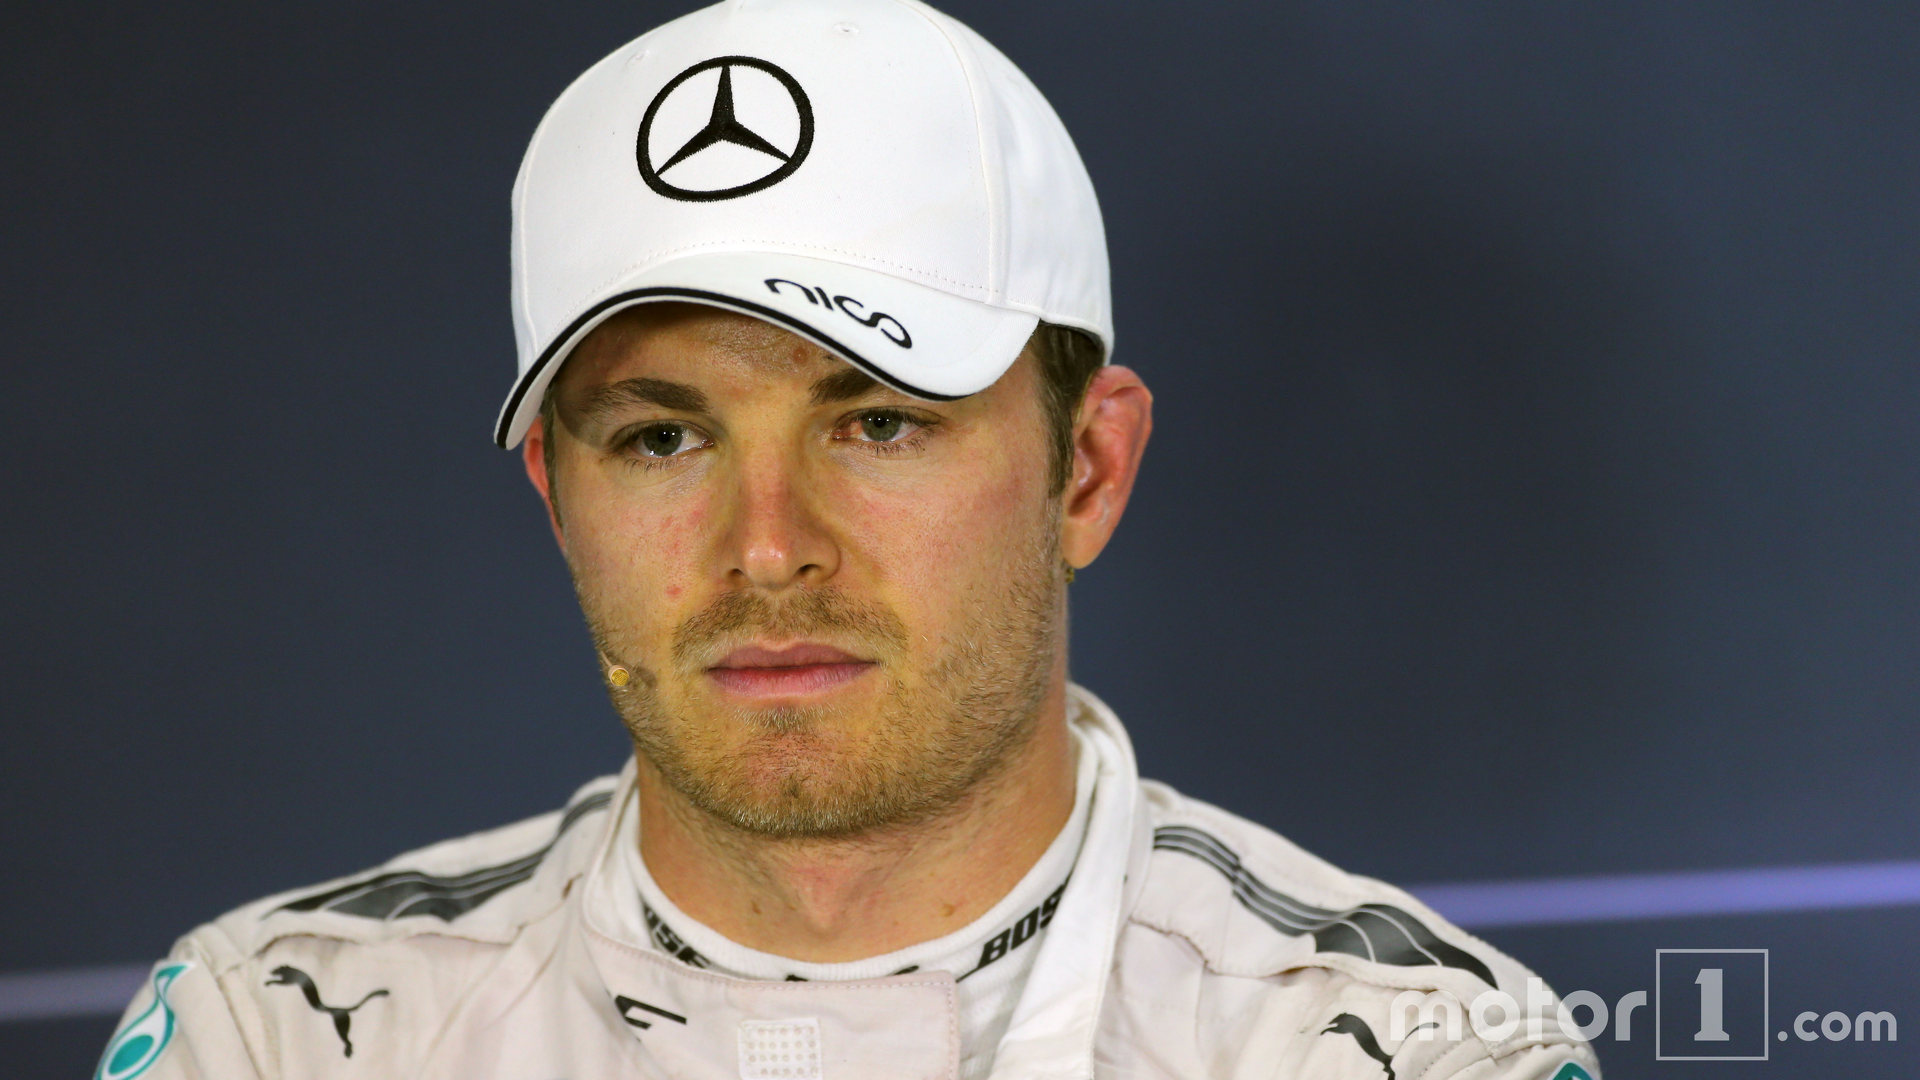 Mercedes lodges appeal over Rosberg penalty